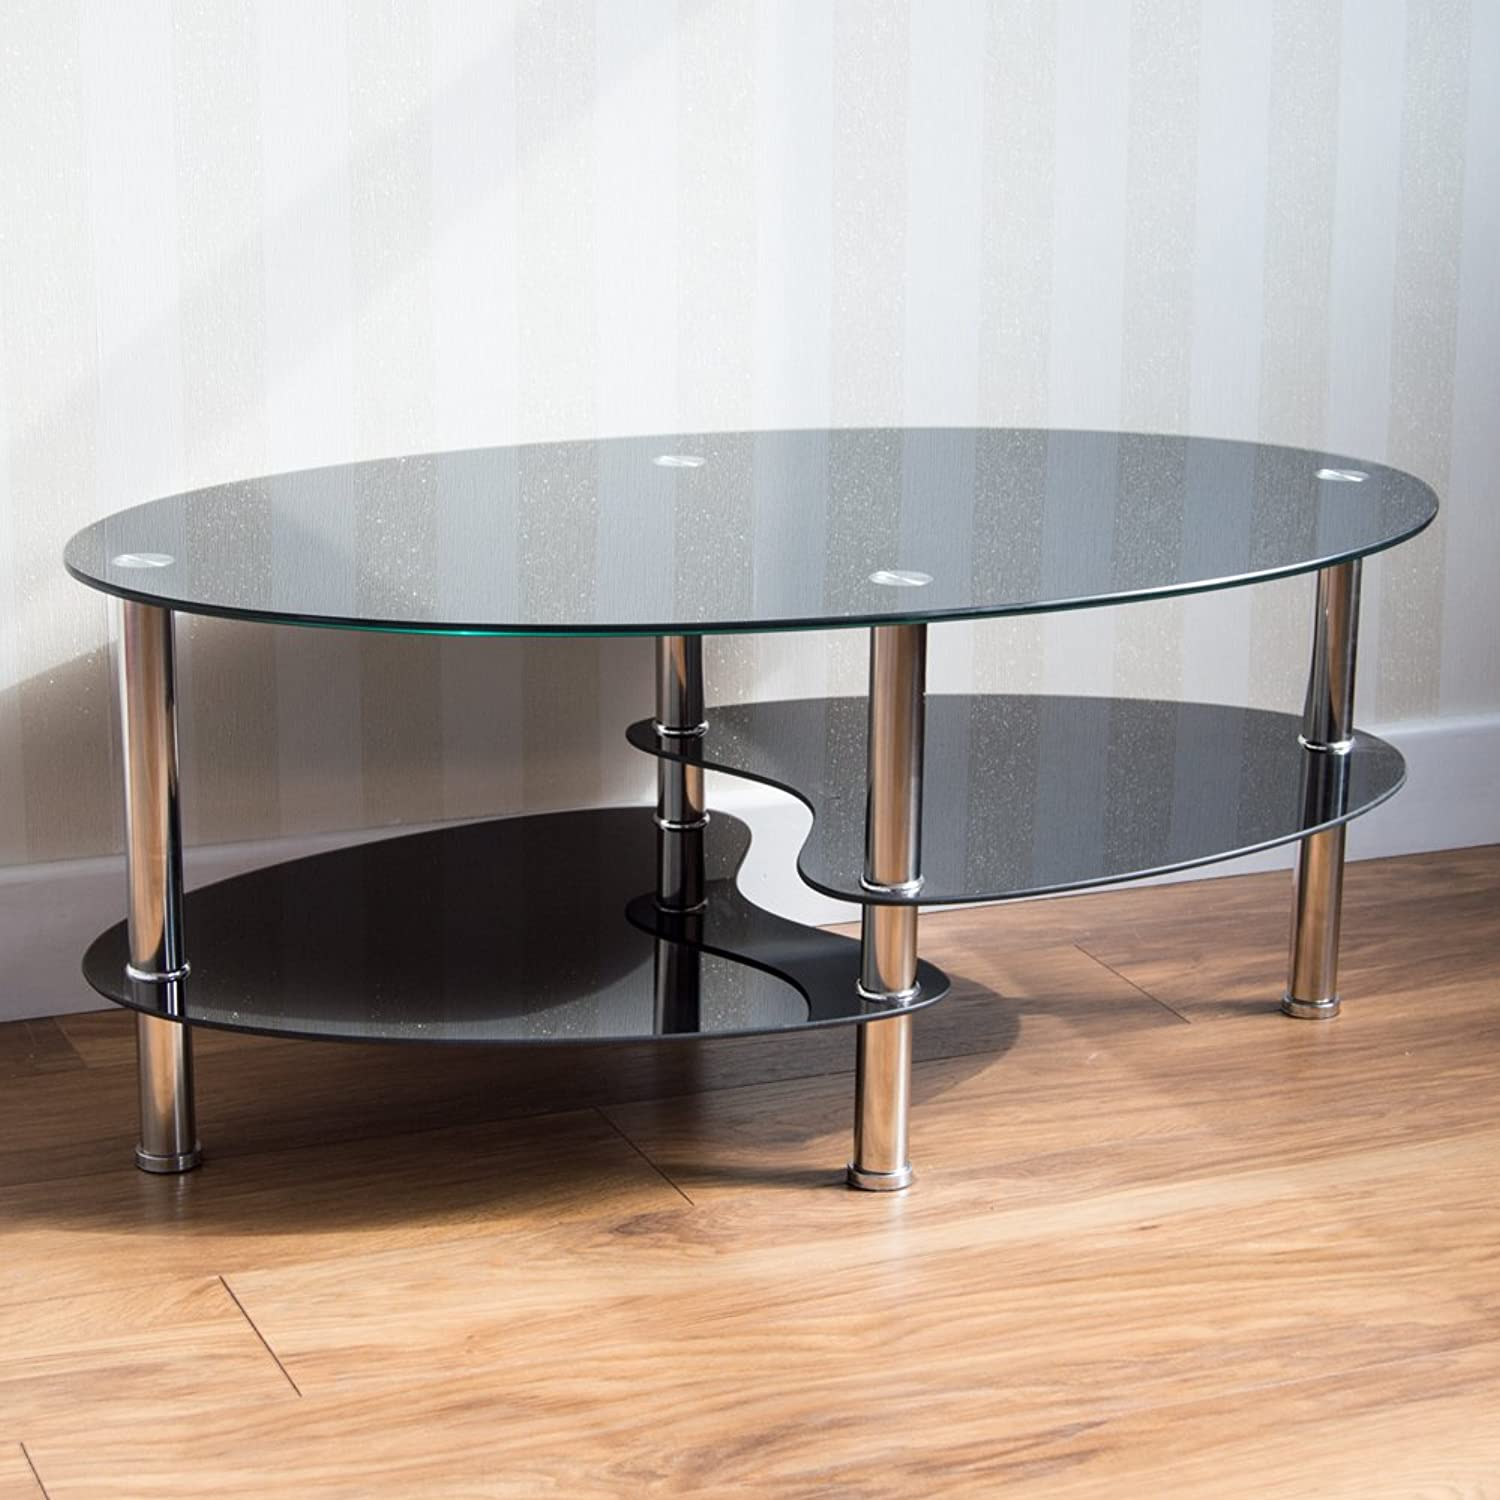 (Black) - Home Discount Cara Glass Coffee Table, Black Oval Stainless Steel Legs Modern